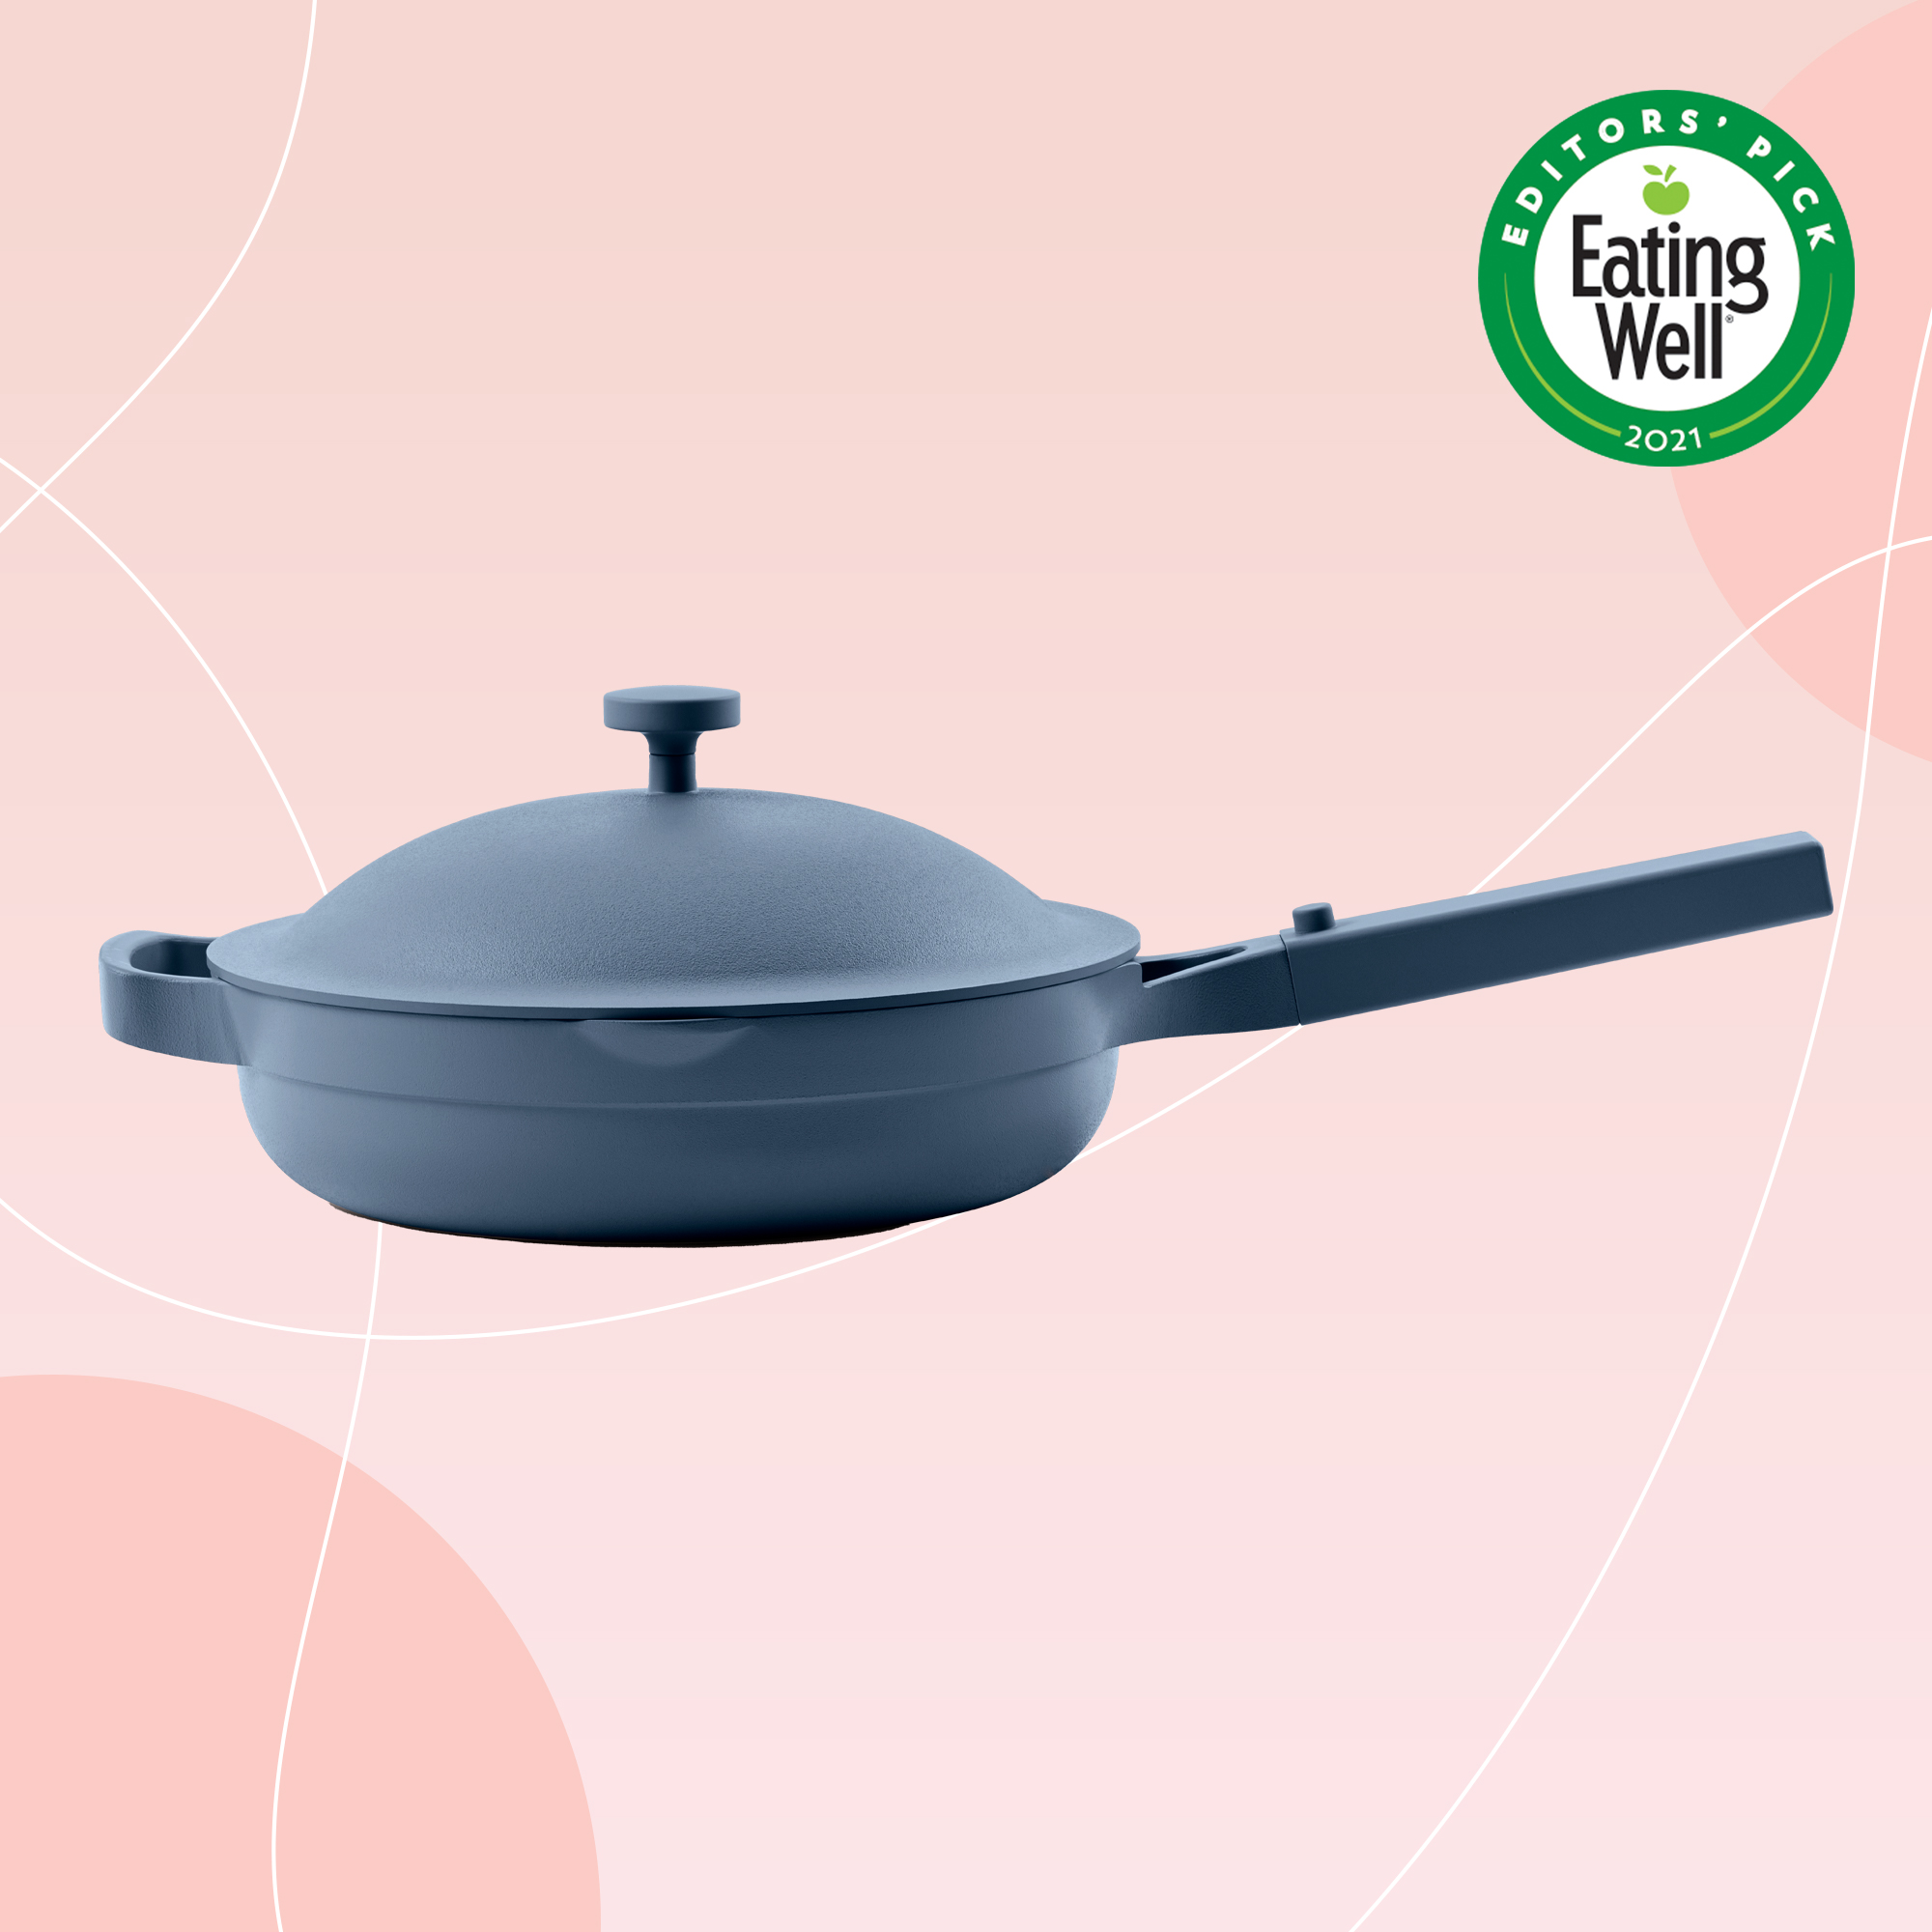 Our Place frying pan